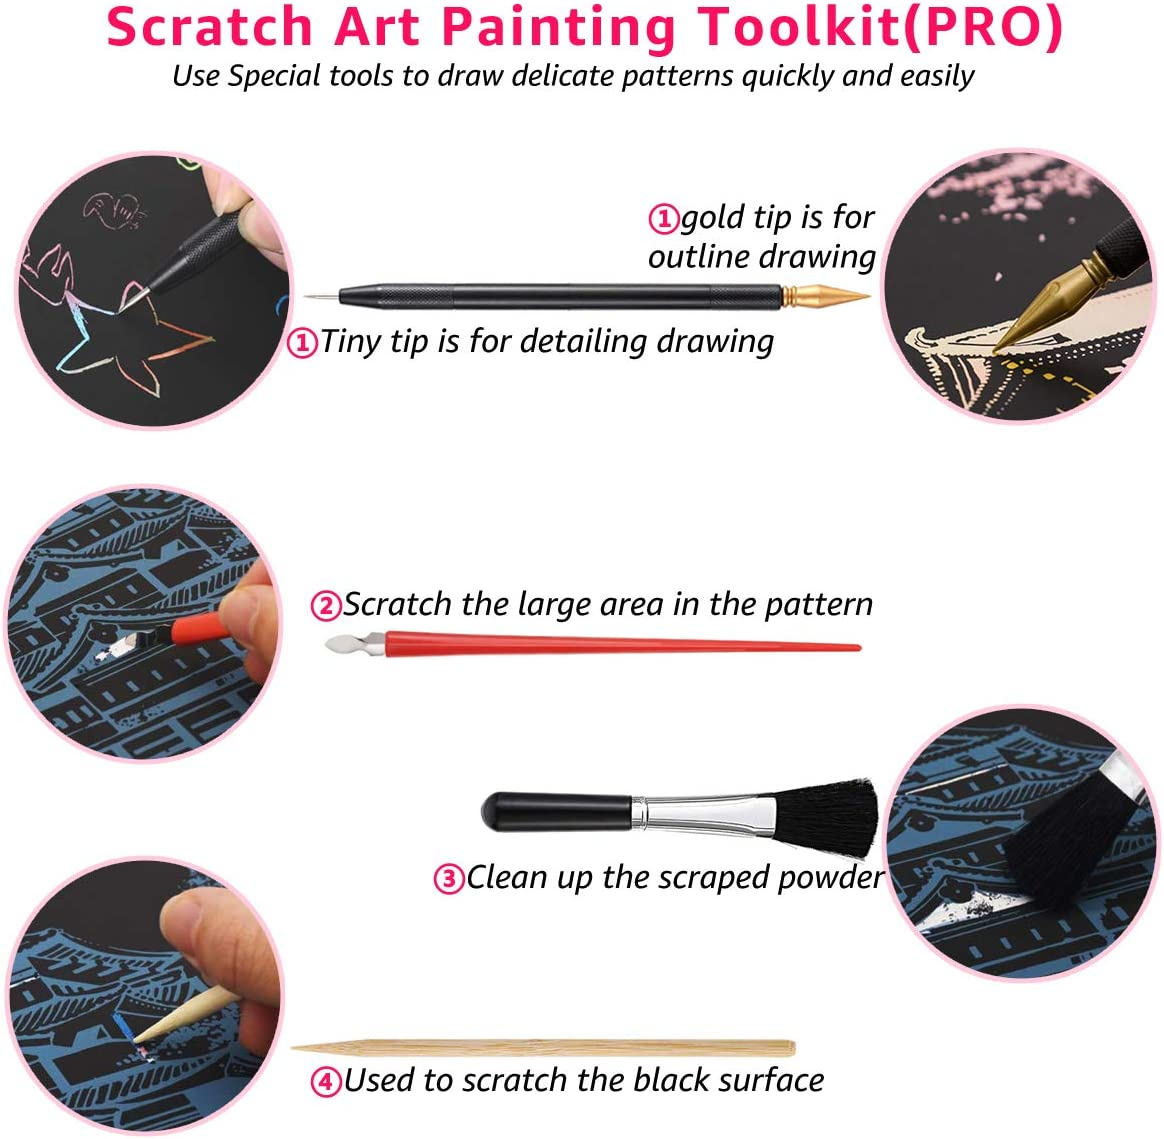 Scratch Art Rainbow Painting Paper Animal A4 DIY Crafts Womens Hobbies Animal Series Engraving Art for Kids /& Adults Scratch Painting Easter /& Christmas Birthday Creative Gift Set: 8 Sheets